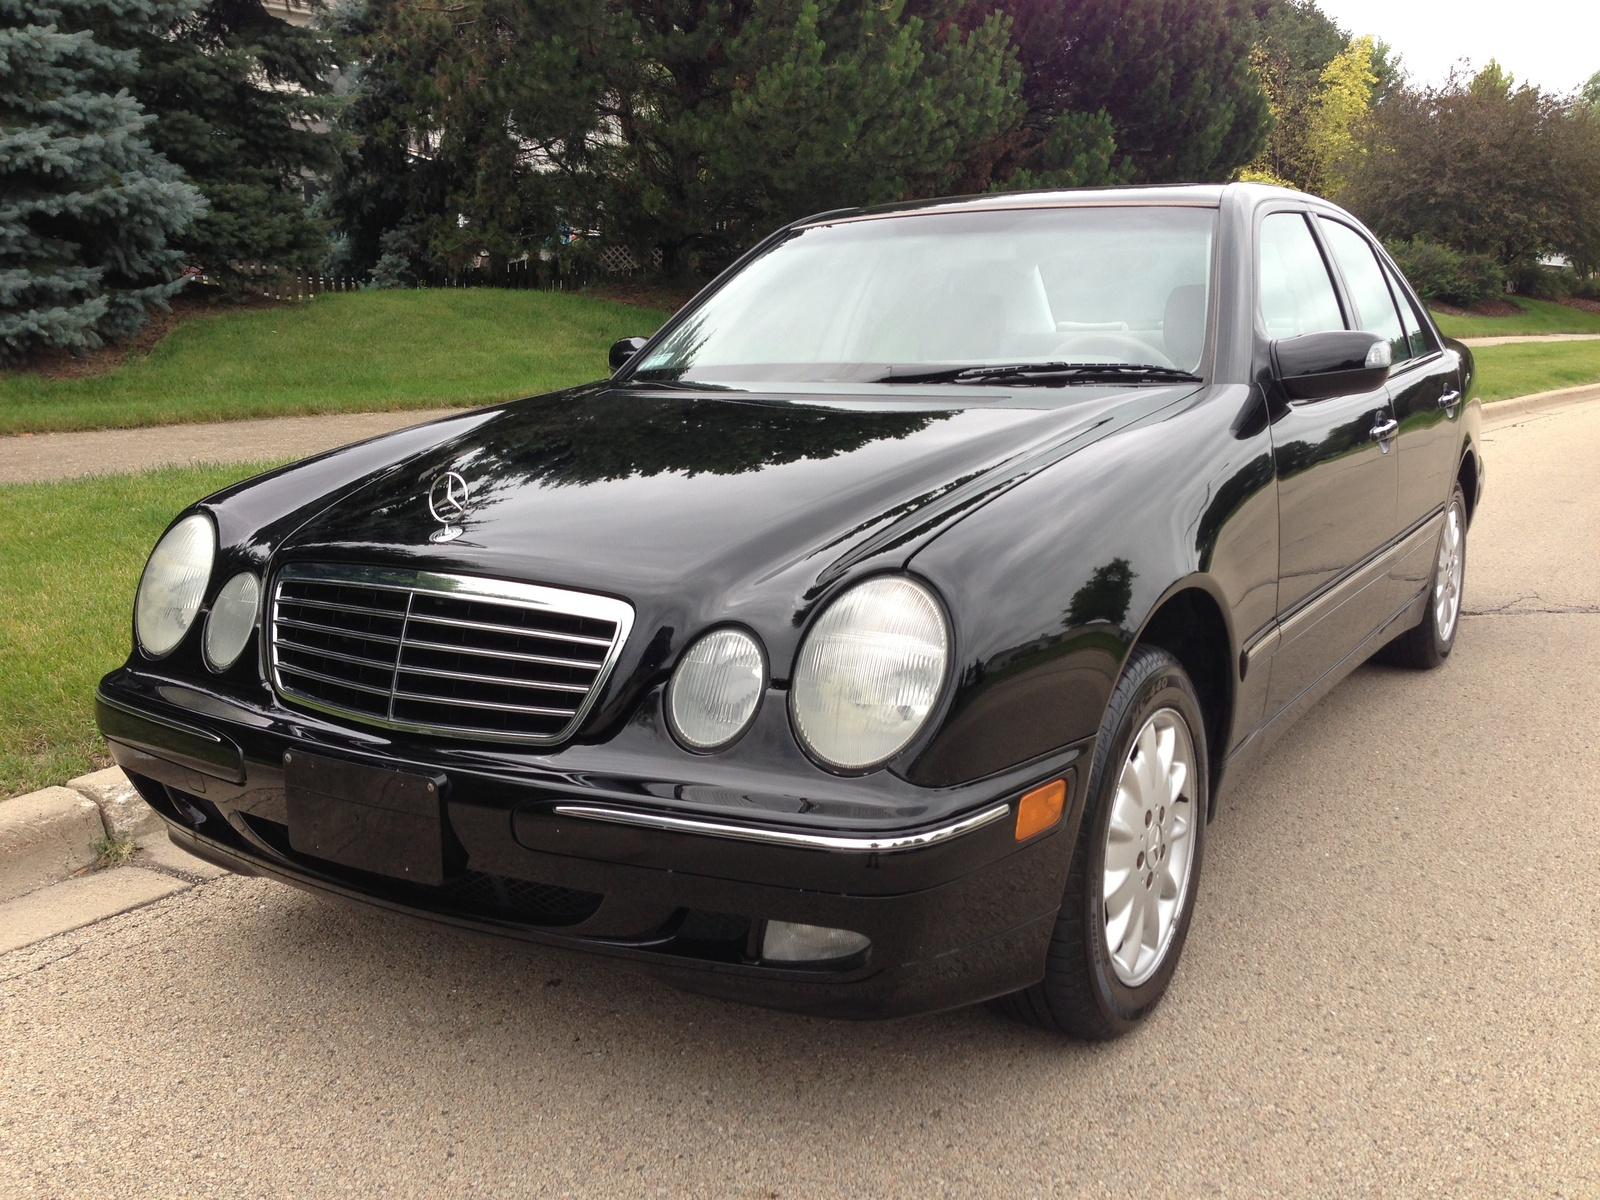 2002 mercedes benz e class pictures cargurus for 2002 mercedes benz suv